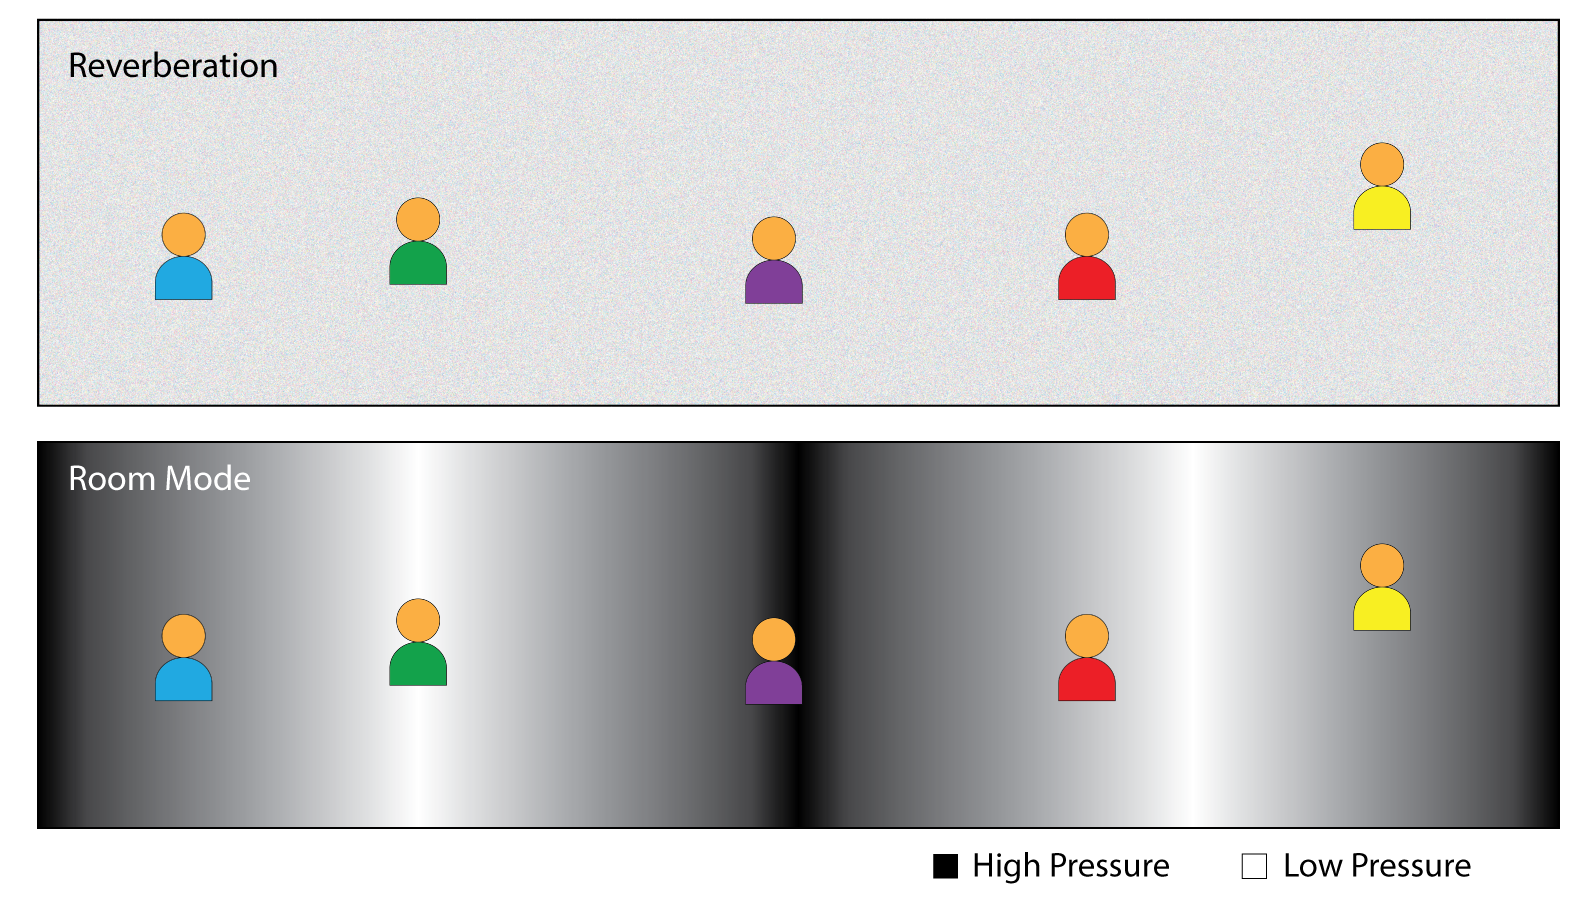 Figure 3 - Reverberation produces the same sound level for all listeners. A room mode produces dramatic level changes from seat-to-seat.